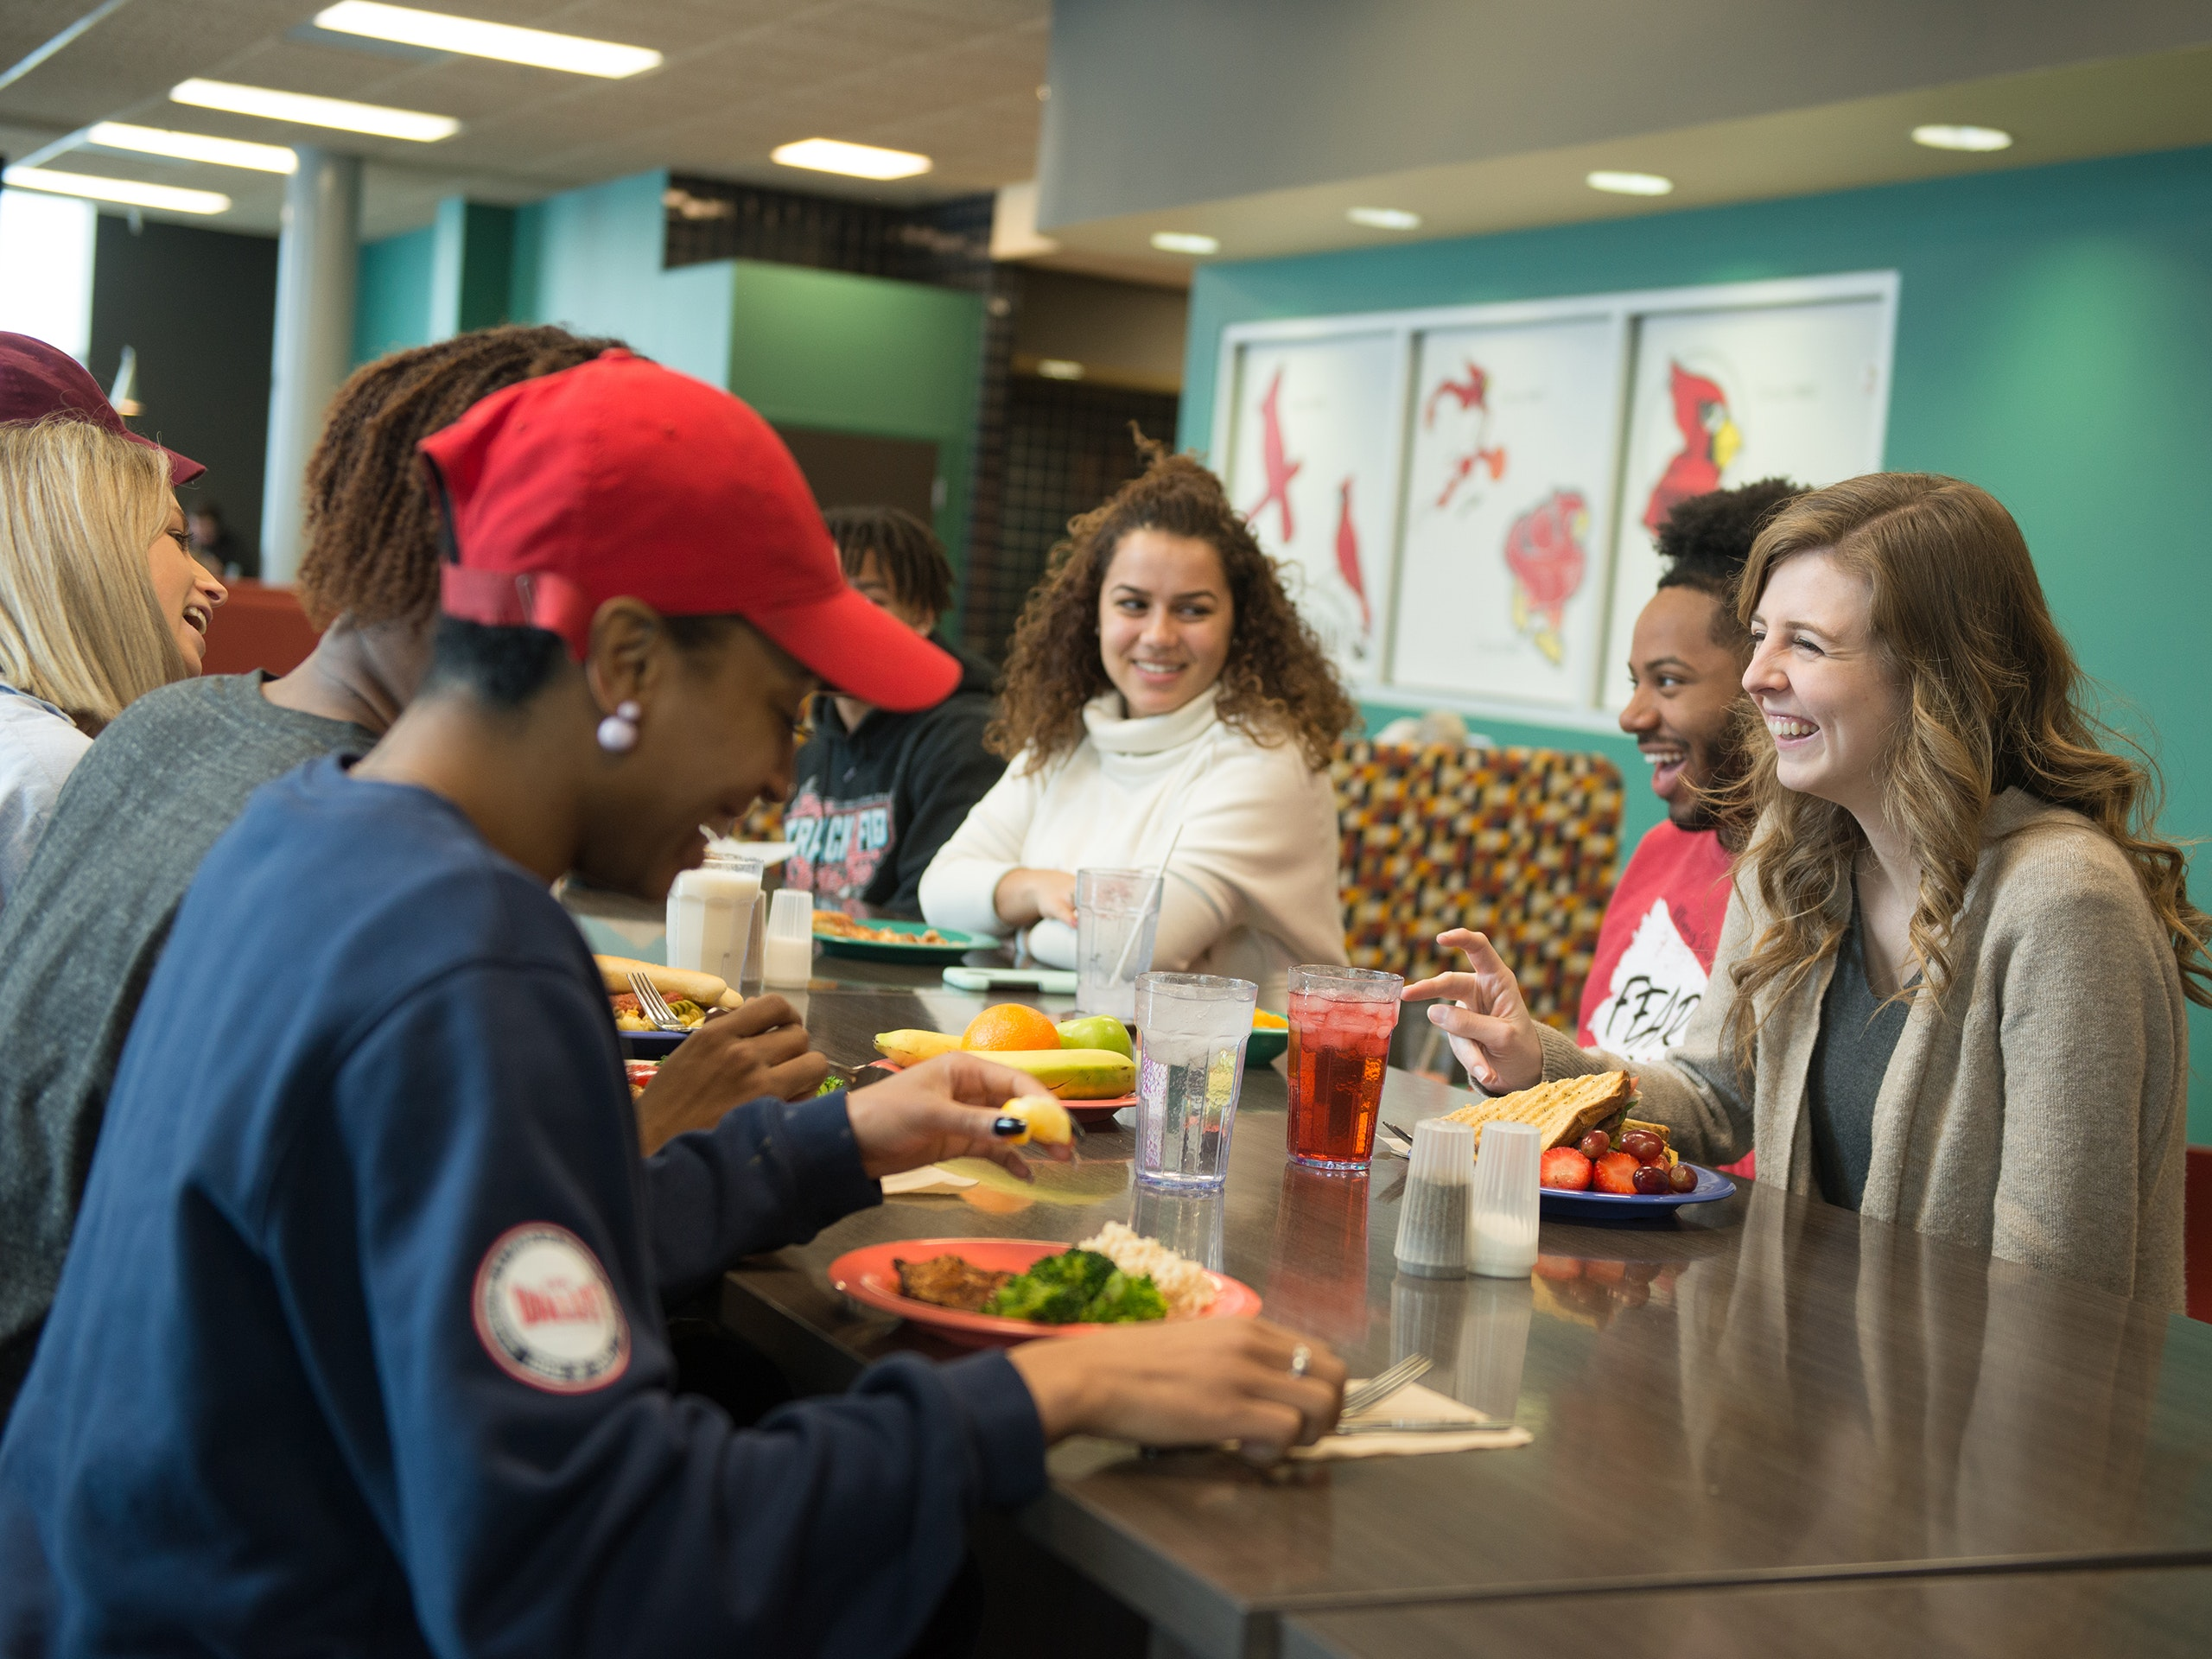 Group of students sitting at a table in a dining hall, chatting and laughing.